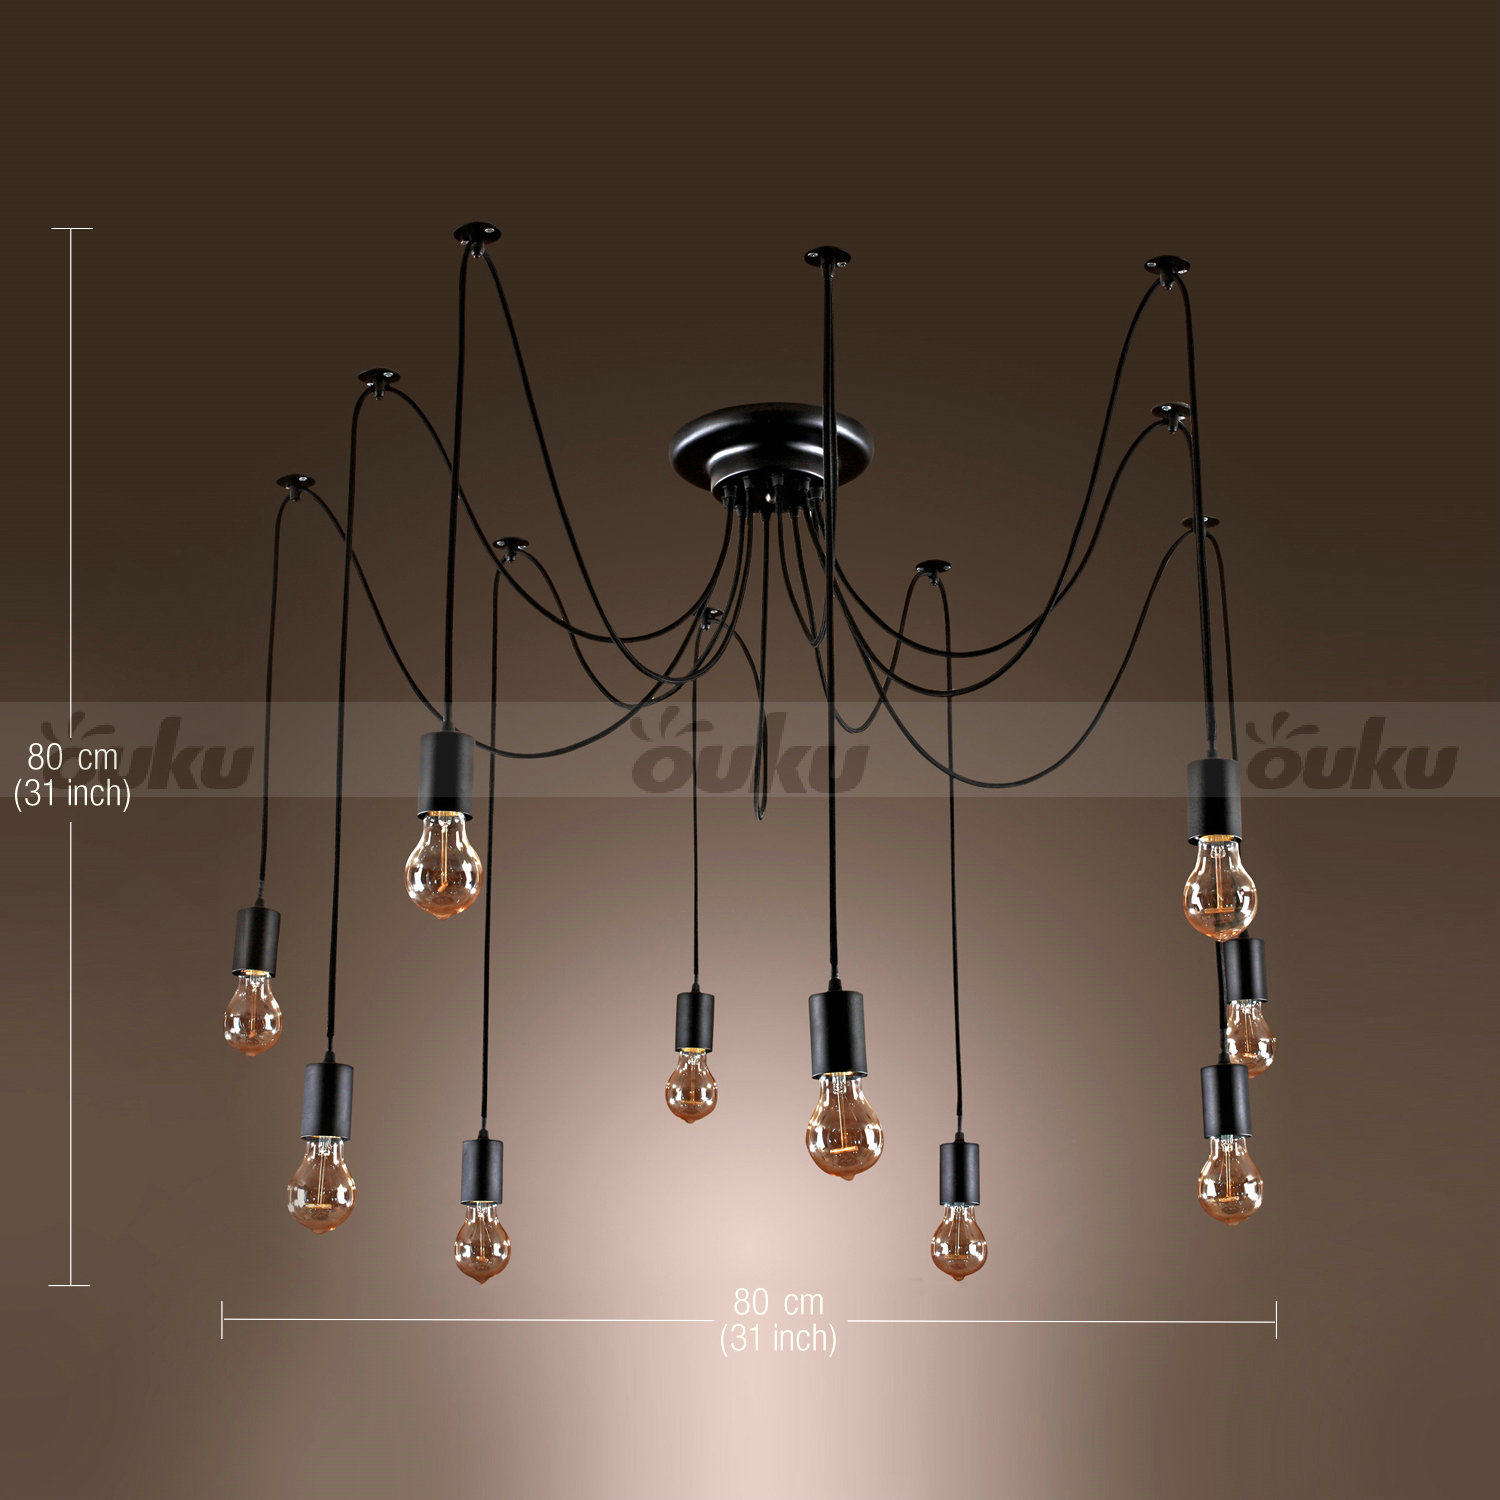 videos cnet are upgrade your light candelabra pricey video leds for a chandelier bulb smart